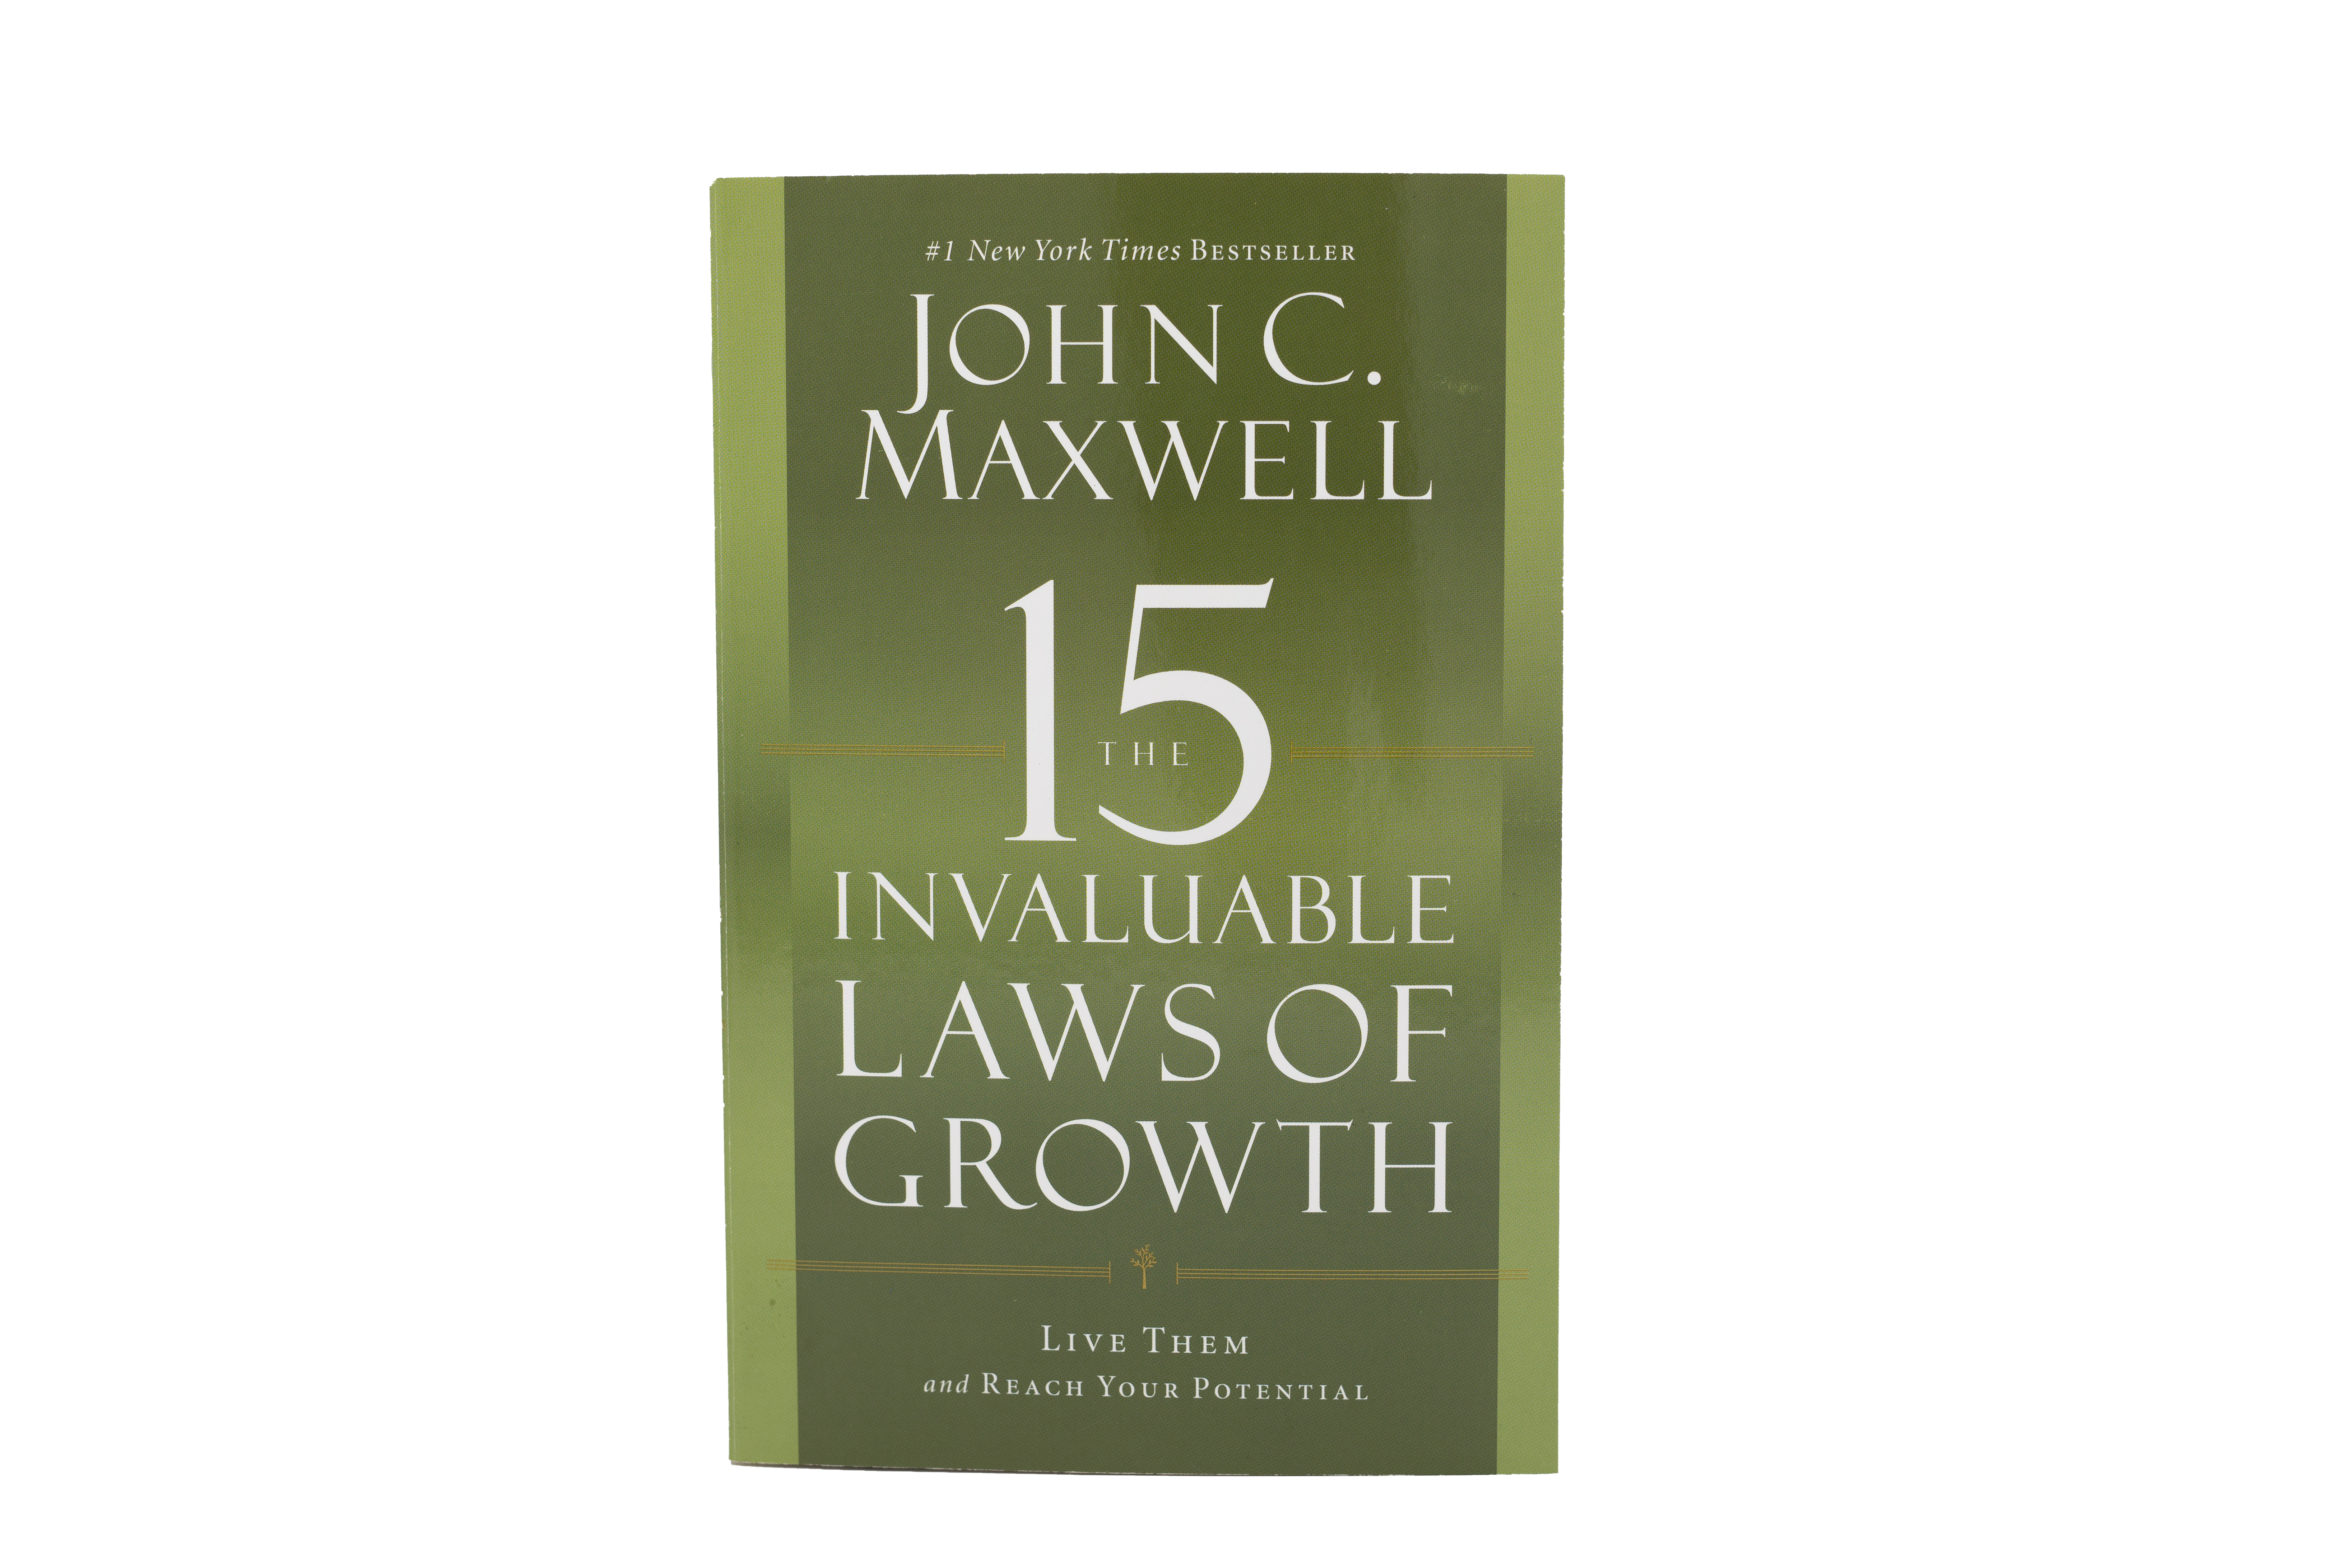 15 Invaluable Laws of Growth - [Paperback]